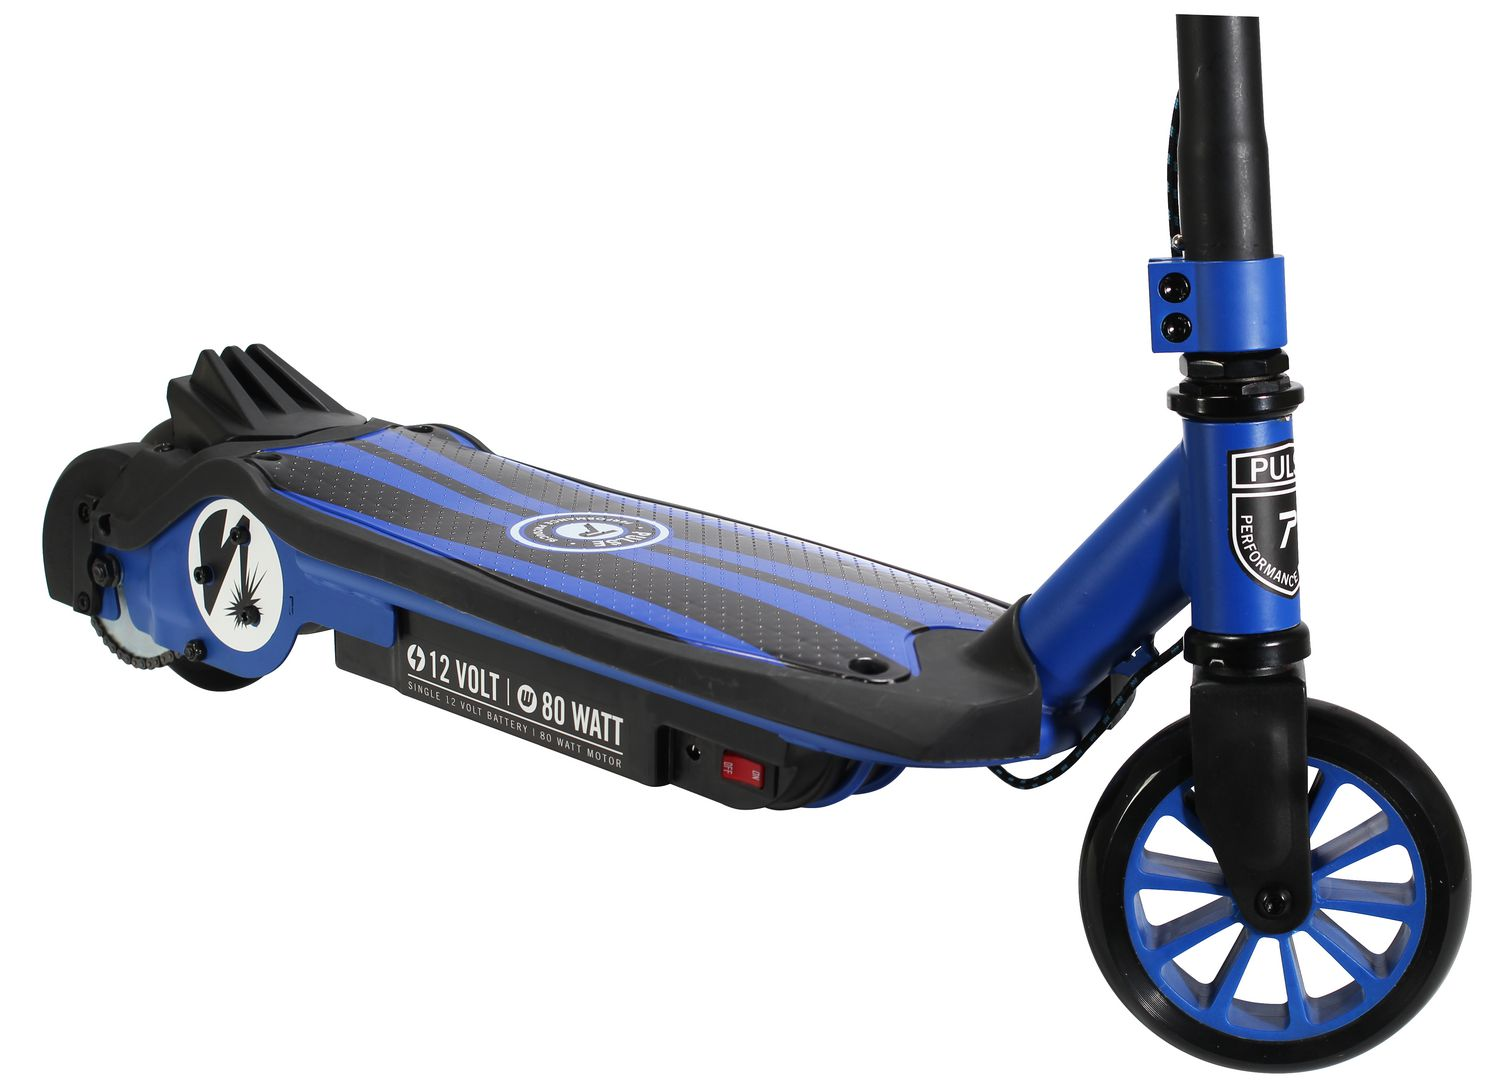 Bravo Sports Pulse Performance Revster Electric Scooter Walmart Canada